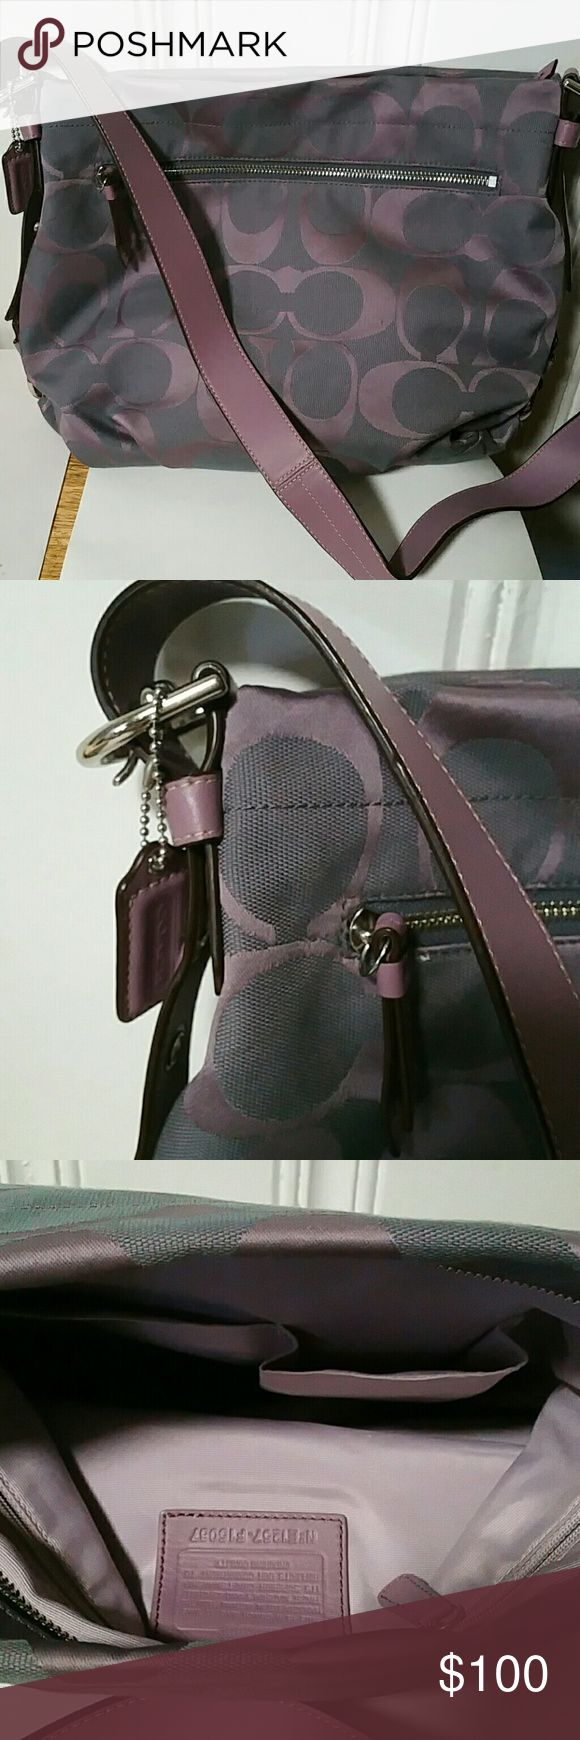 Coach Purse Lavender and gray lsrge Coach purse. It measures 11hx15w with a 18 inch strap. It is very clean Coach Bags Shoulder Bags